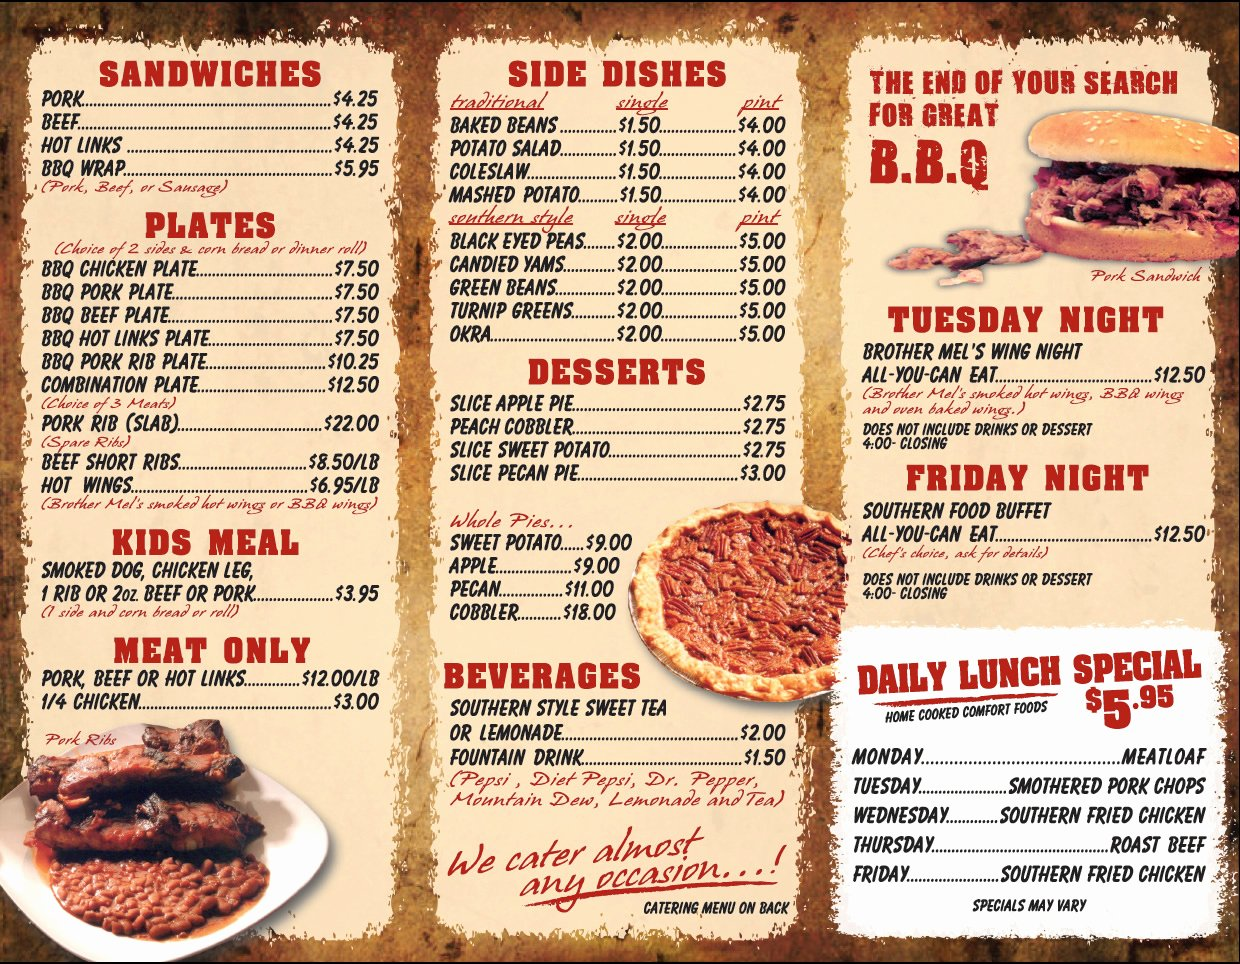 Bbq Catering Menu Template Awesome 14 Design Your Own Restaurant Menu Create Your